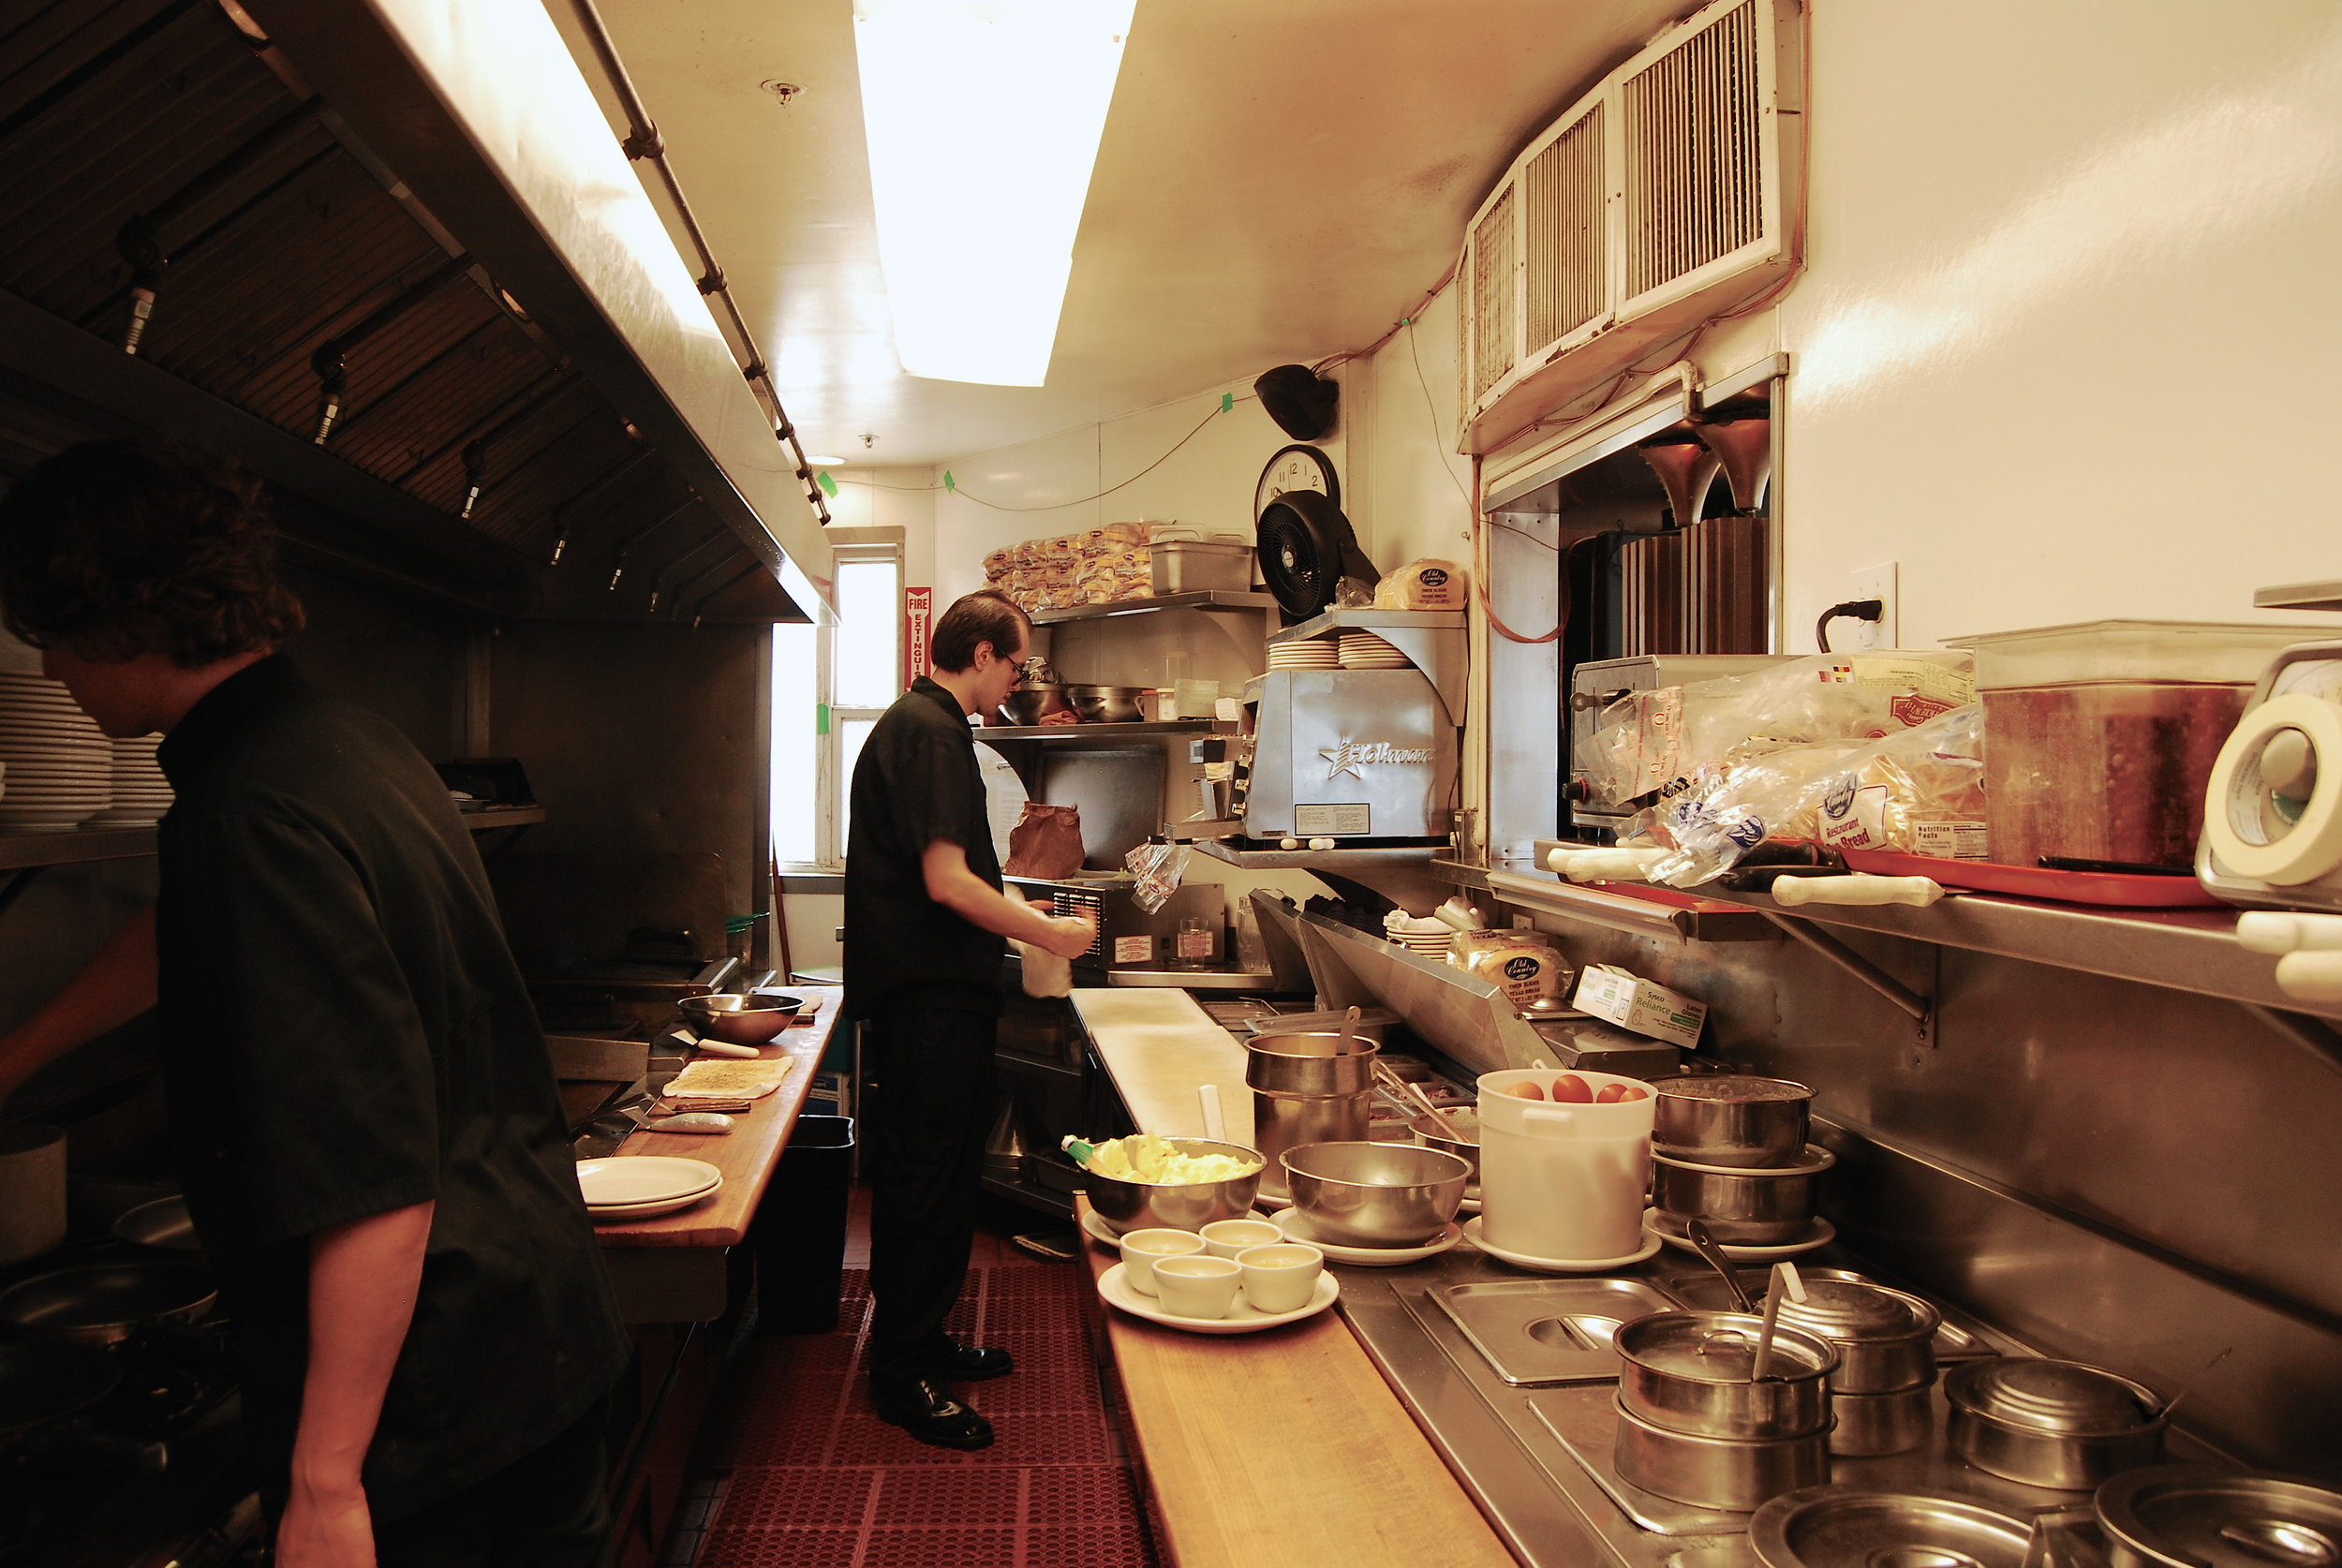 Inside the kitchen at Louis'.